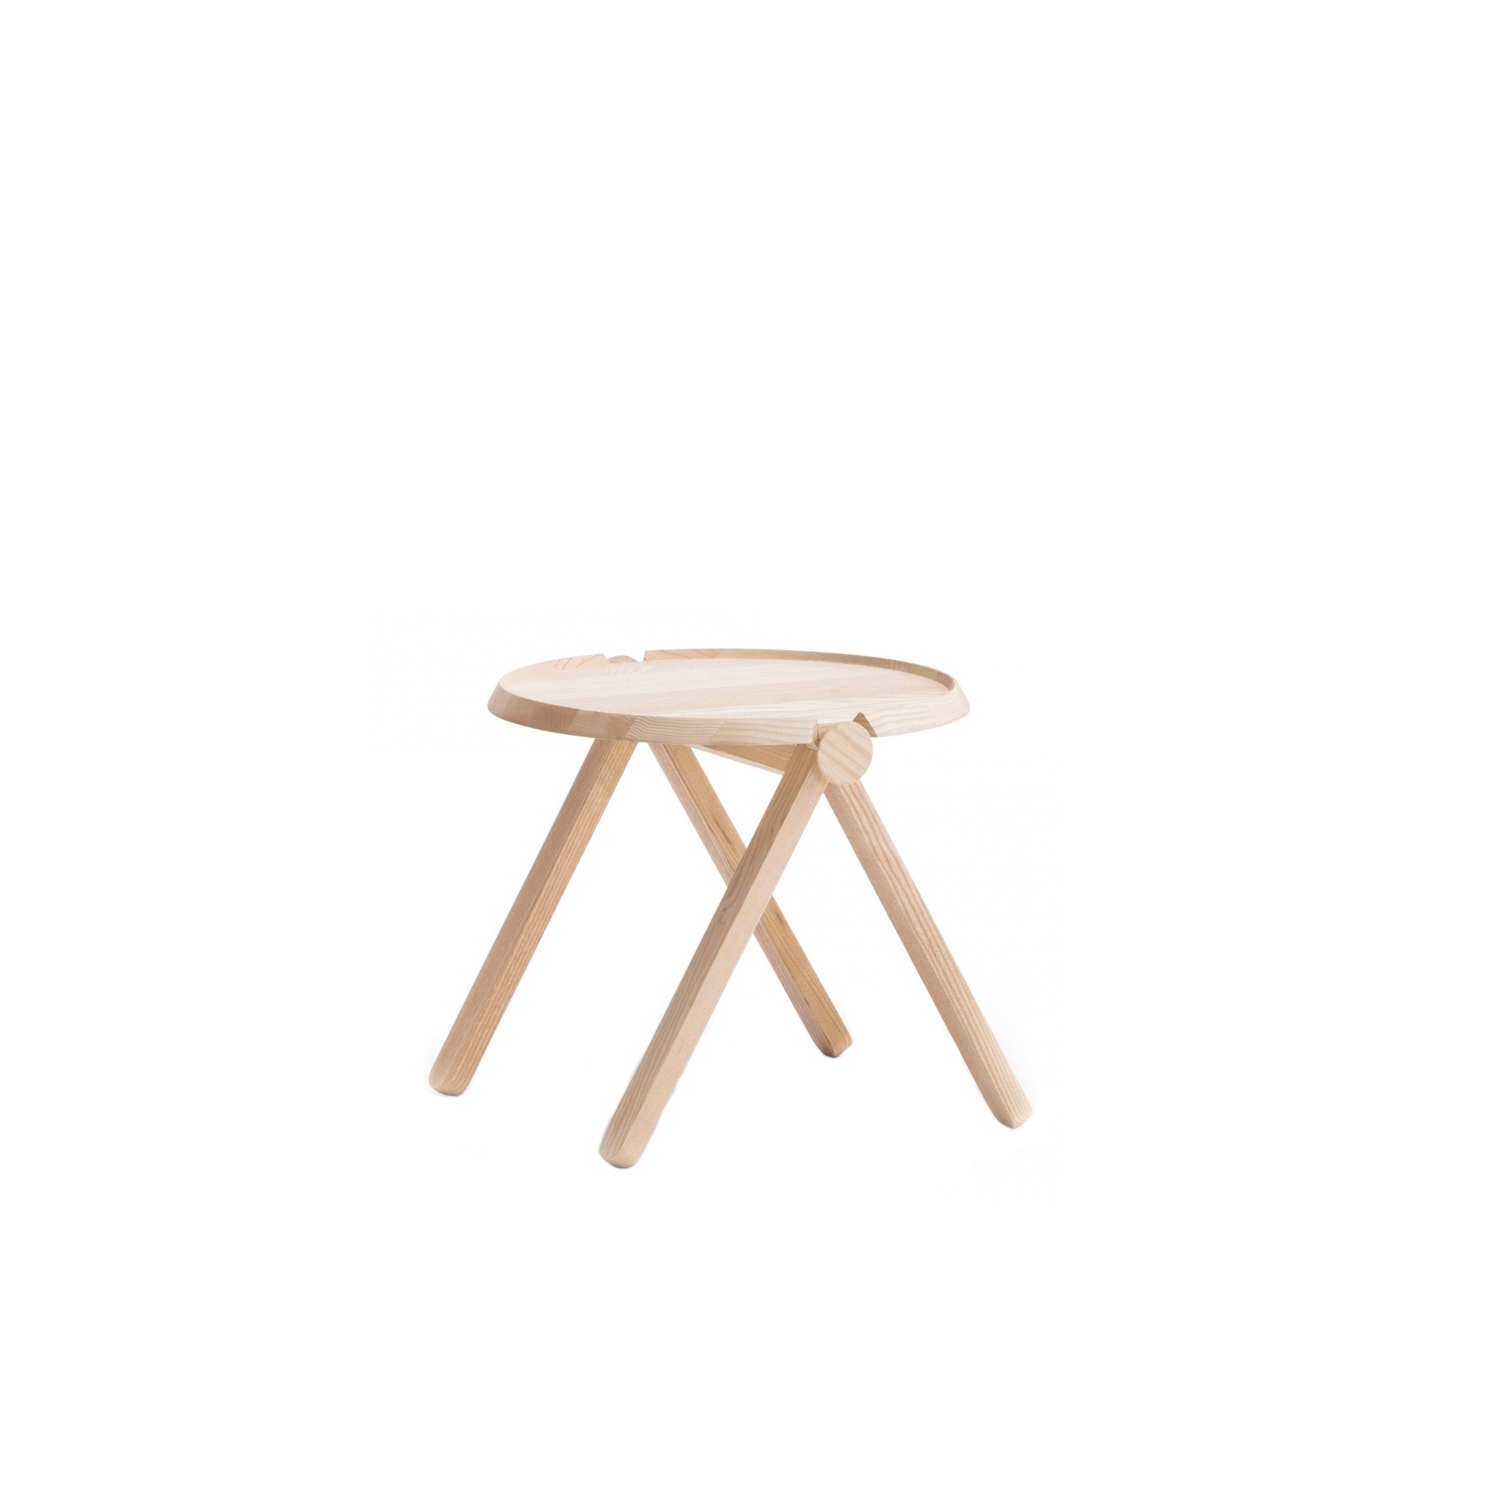 Lilliput Side Table - Lilliput side tables made of solid or lacquered ashwood, with two contrasting natural wood knobs which are only available in natural Ashwood. These knobs allow Lilliput to be flat-packed for swift and environmentally friendly transport.  | Matter of Stuff